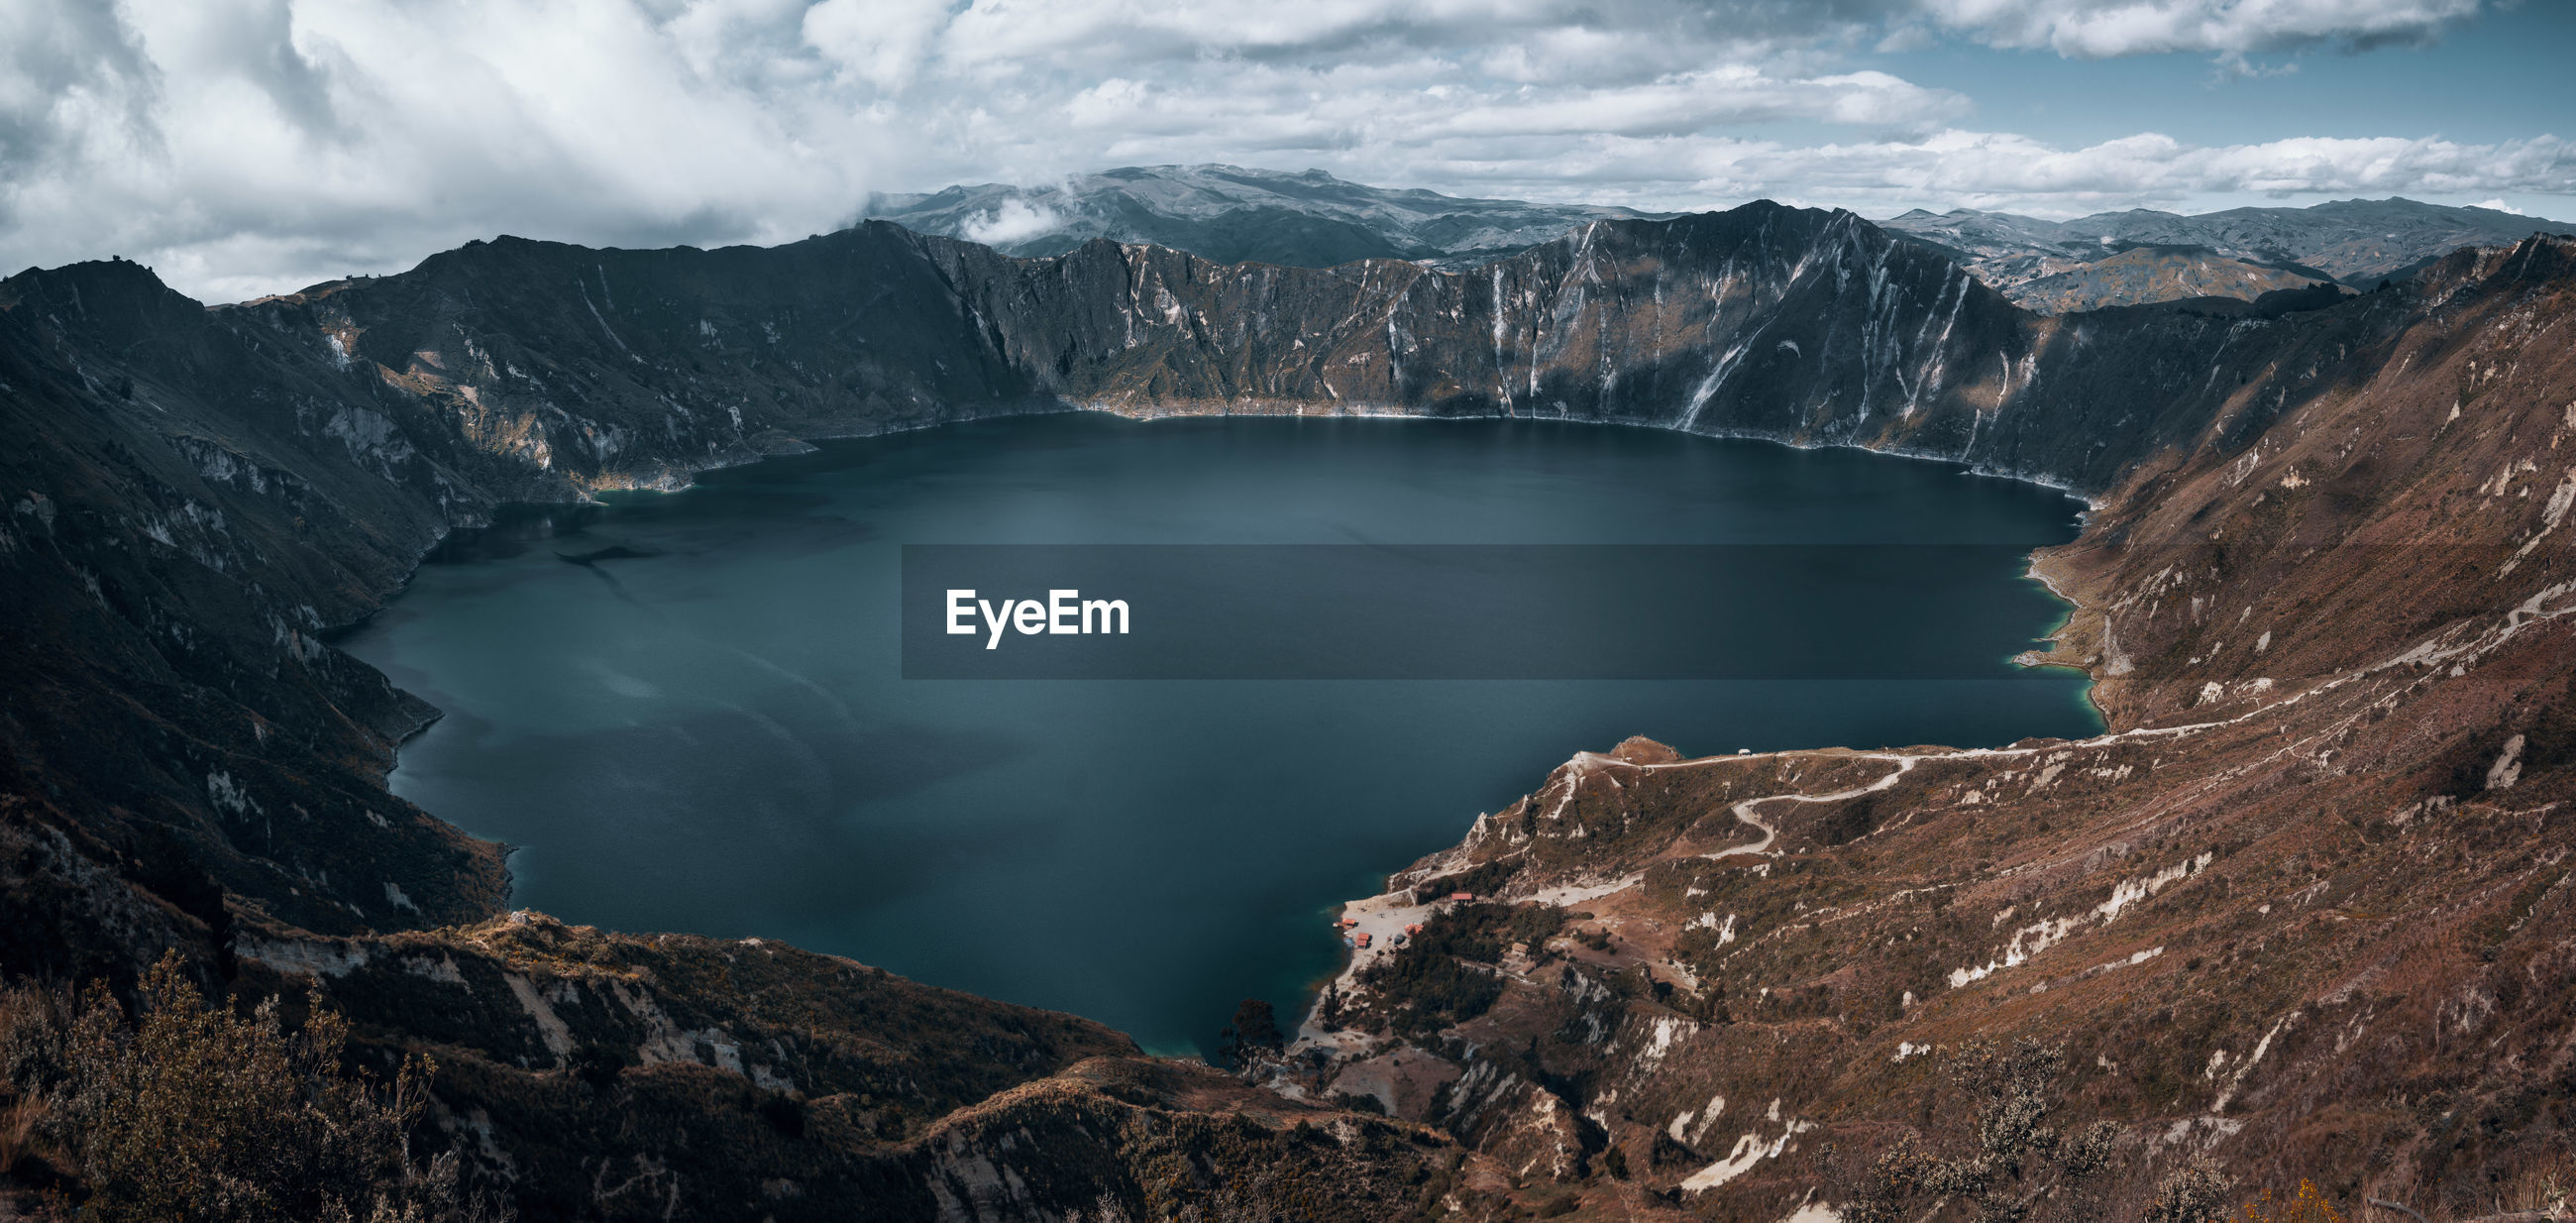 A walk around the crater lake. Travel Destinations Quilotoa Mountain Range Explore Discover  South America Latin America Adventure Backpacking Idyllic Tranquil Scene Landscape Non-urban Scene No People Remote Day Outdoors Panorama Moody Beach Water Crater Volcanic Landscape Turquoise Colored High Angle View The Great Outdoors - 2019 EyeEm Awards